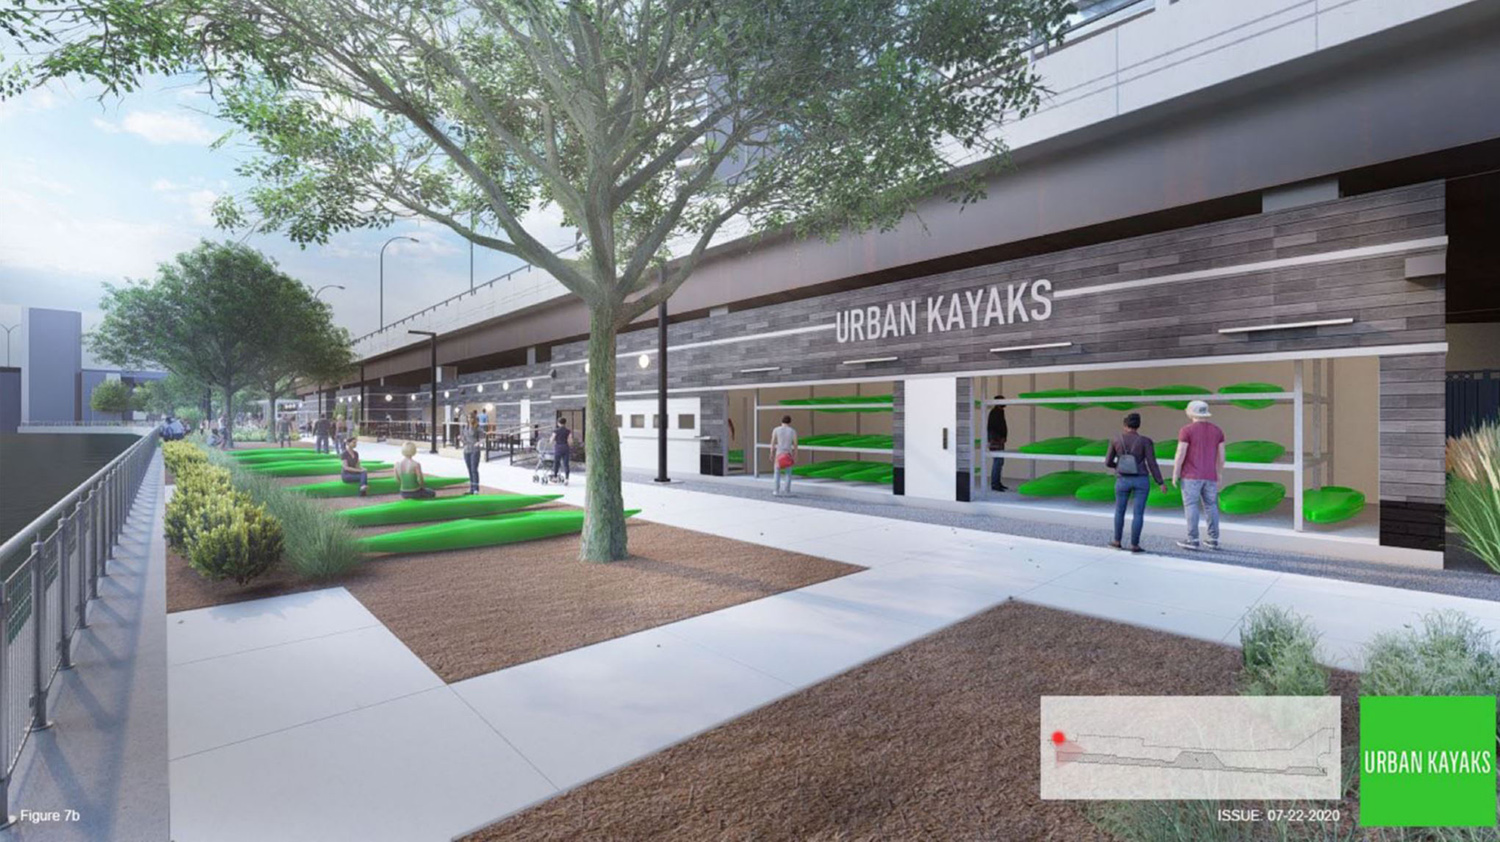 Urban Kayaks. Rendering by JLK Architects